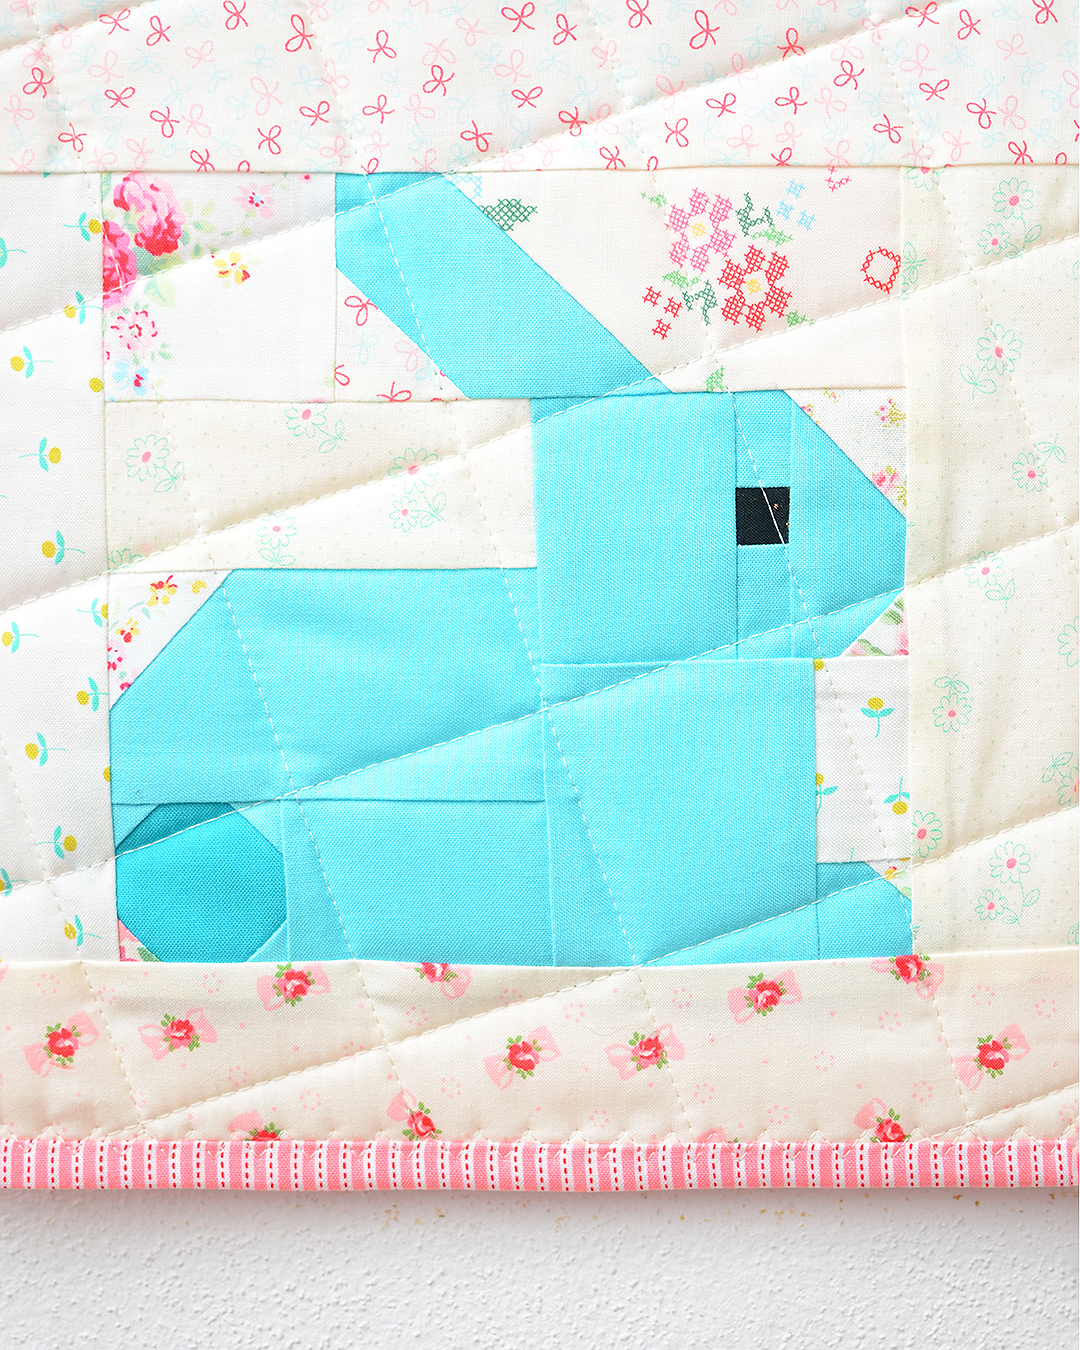 Bunny Easter quilt pattern - blue bunny